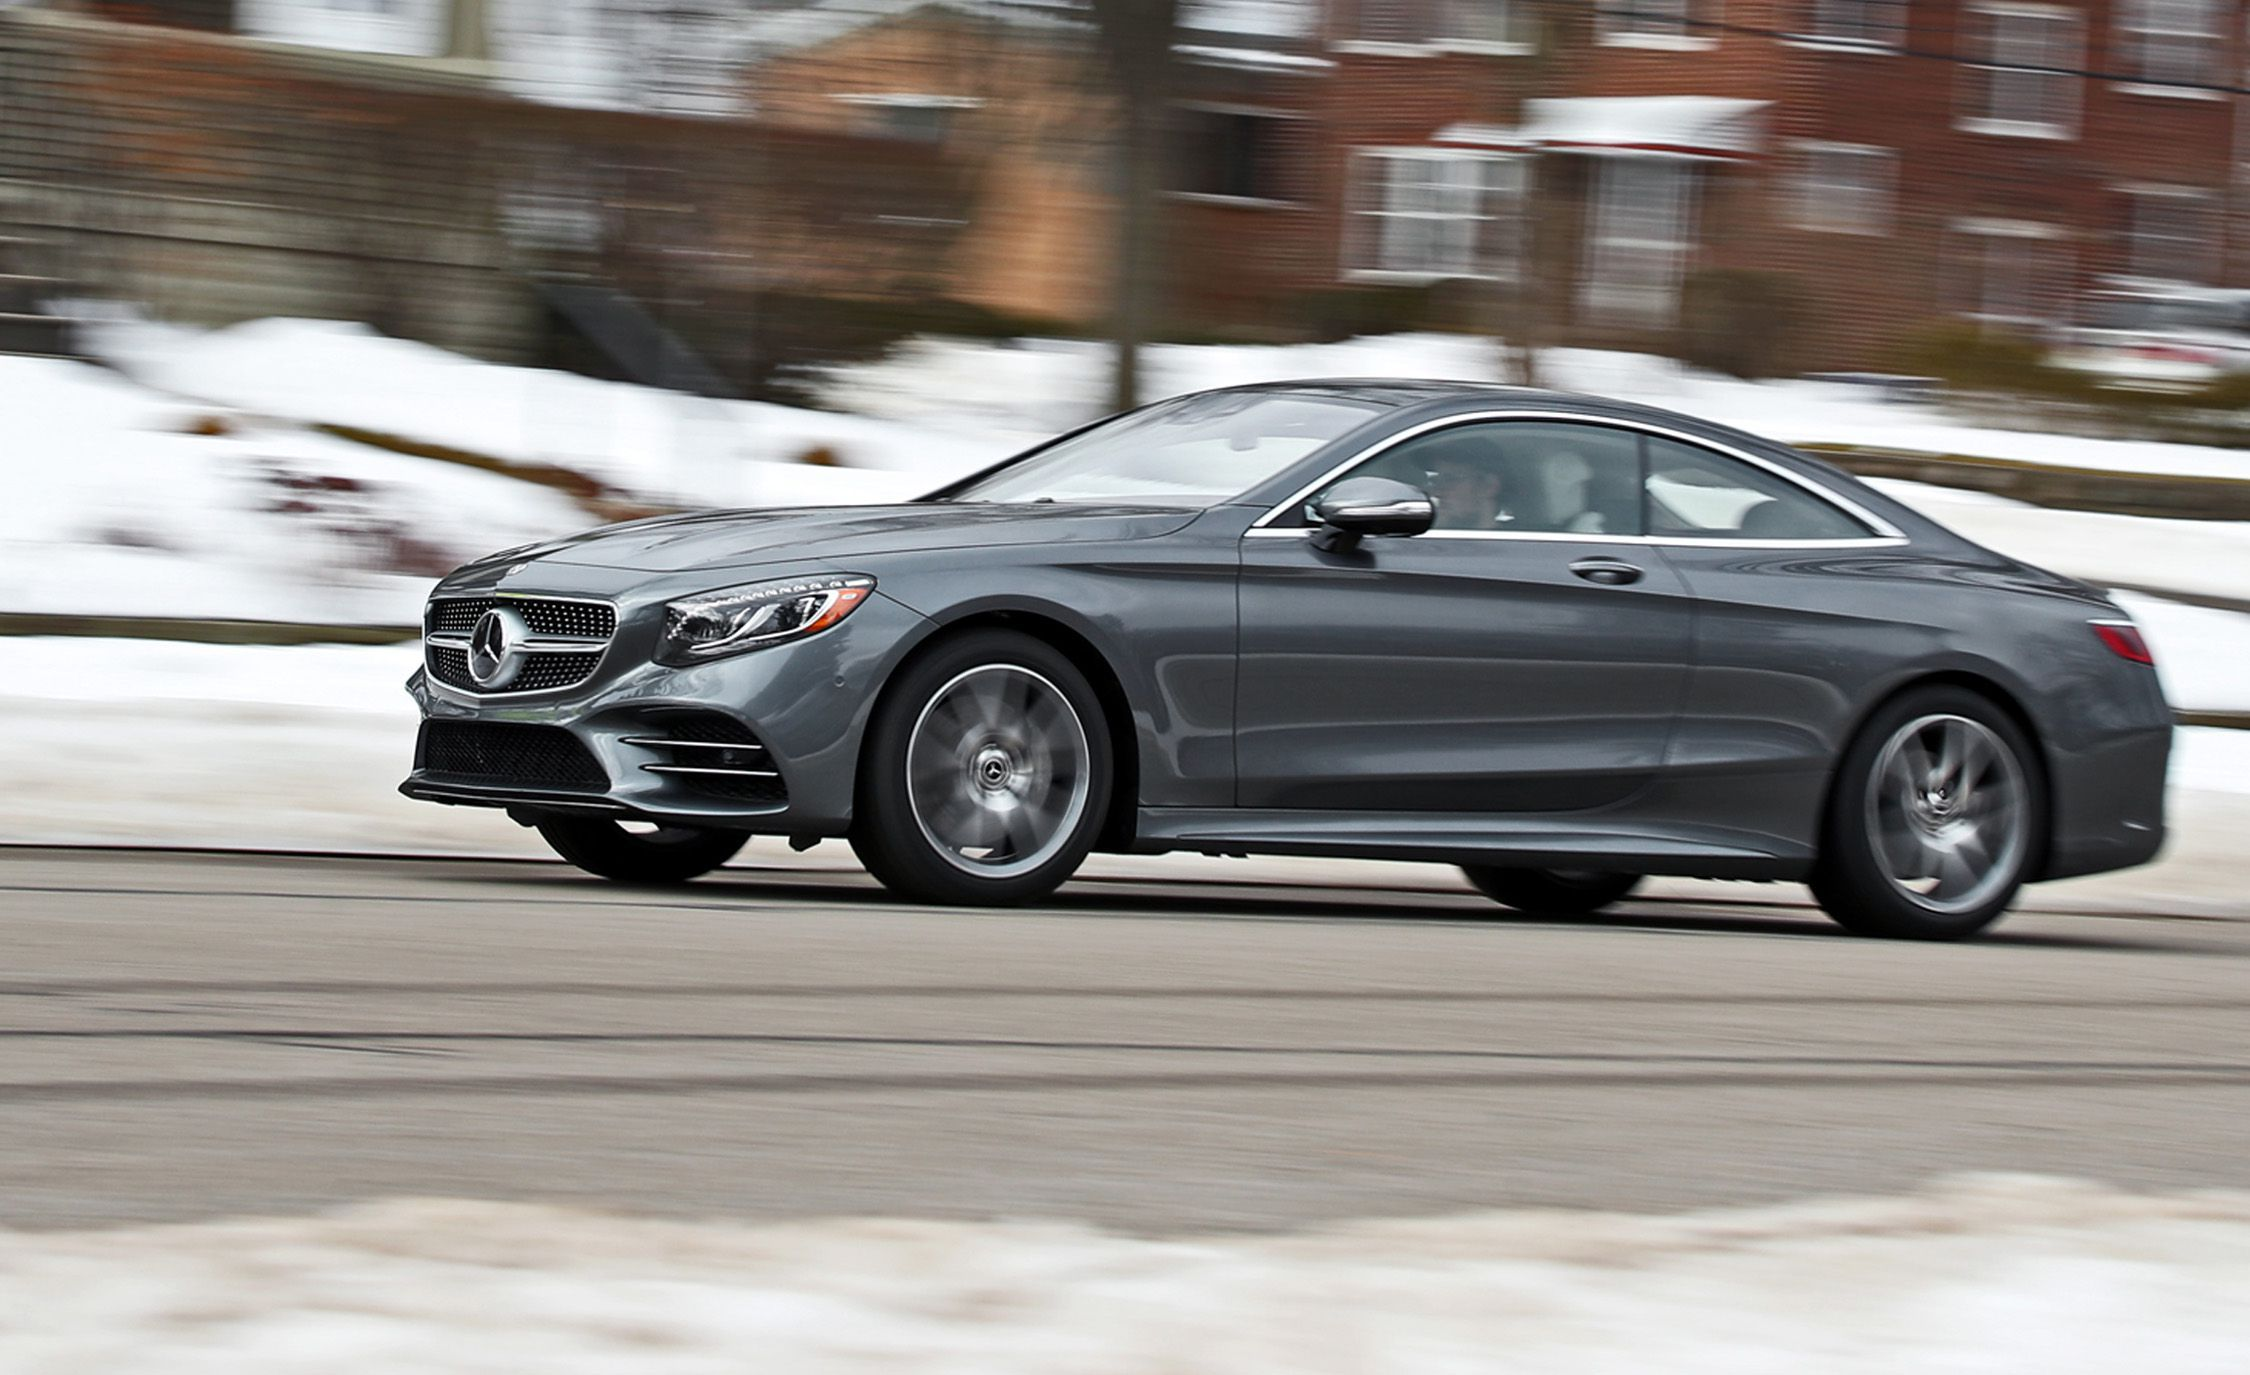 2018 Mercedes Benz S560 4matic Coupe Tested Silent Lucidity